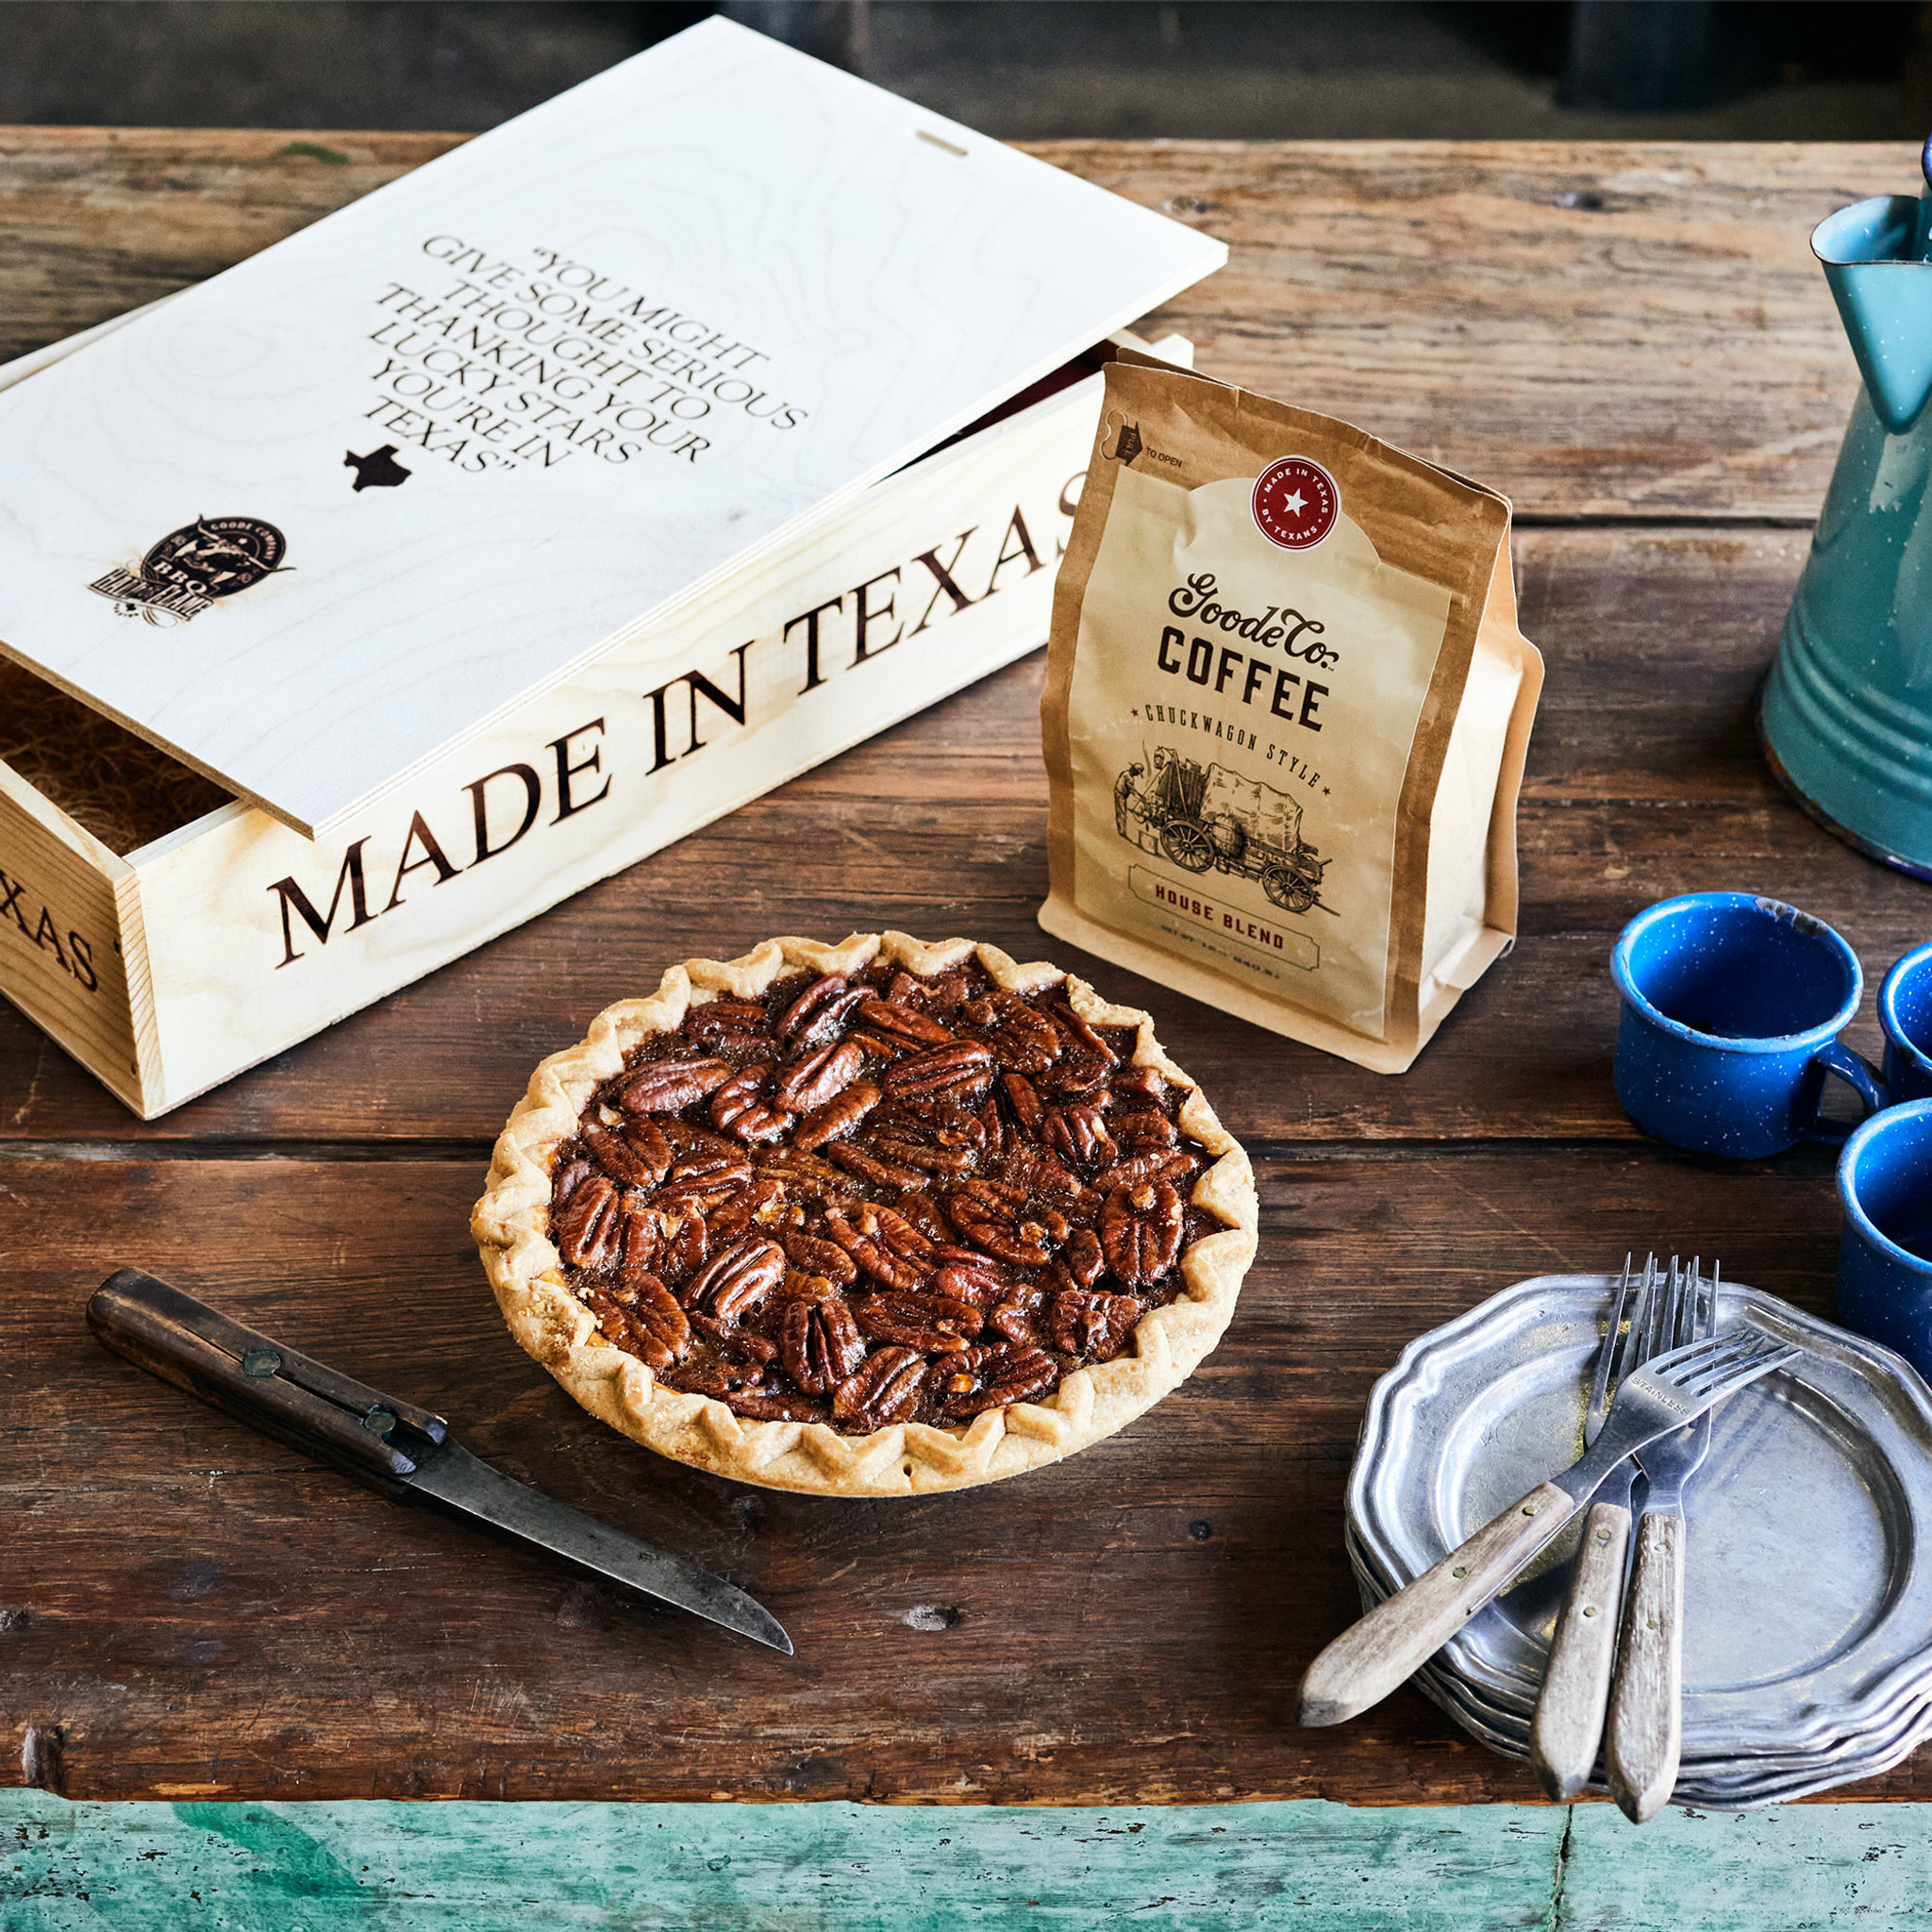 Texas Style Coffee Break Gift Box, with one 12-ounce bag of Chuckwagon or Texas Pecan coffee and one 8-inch Pecan Pie, packaged in a branded pine gift box.